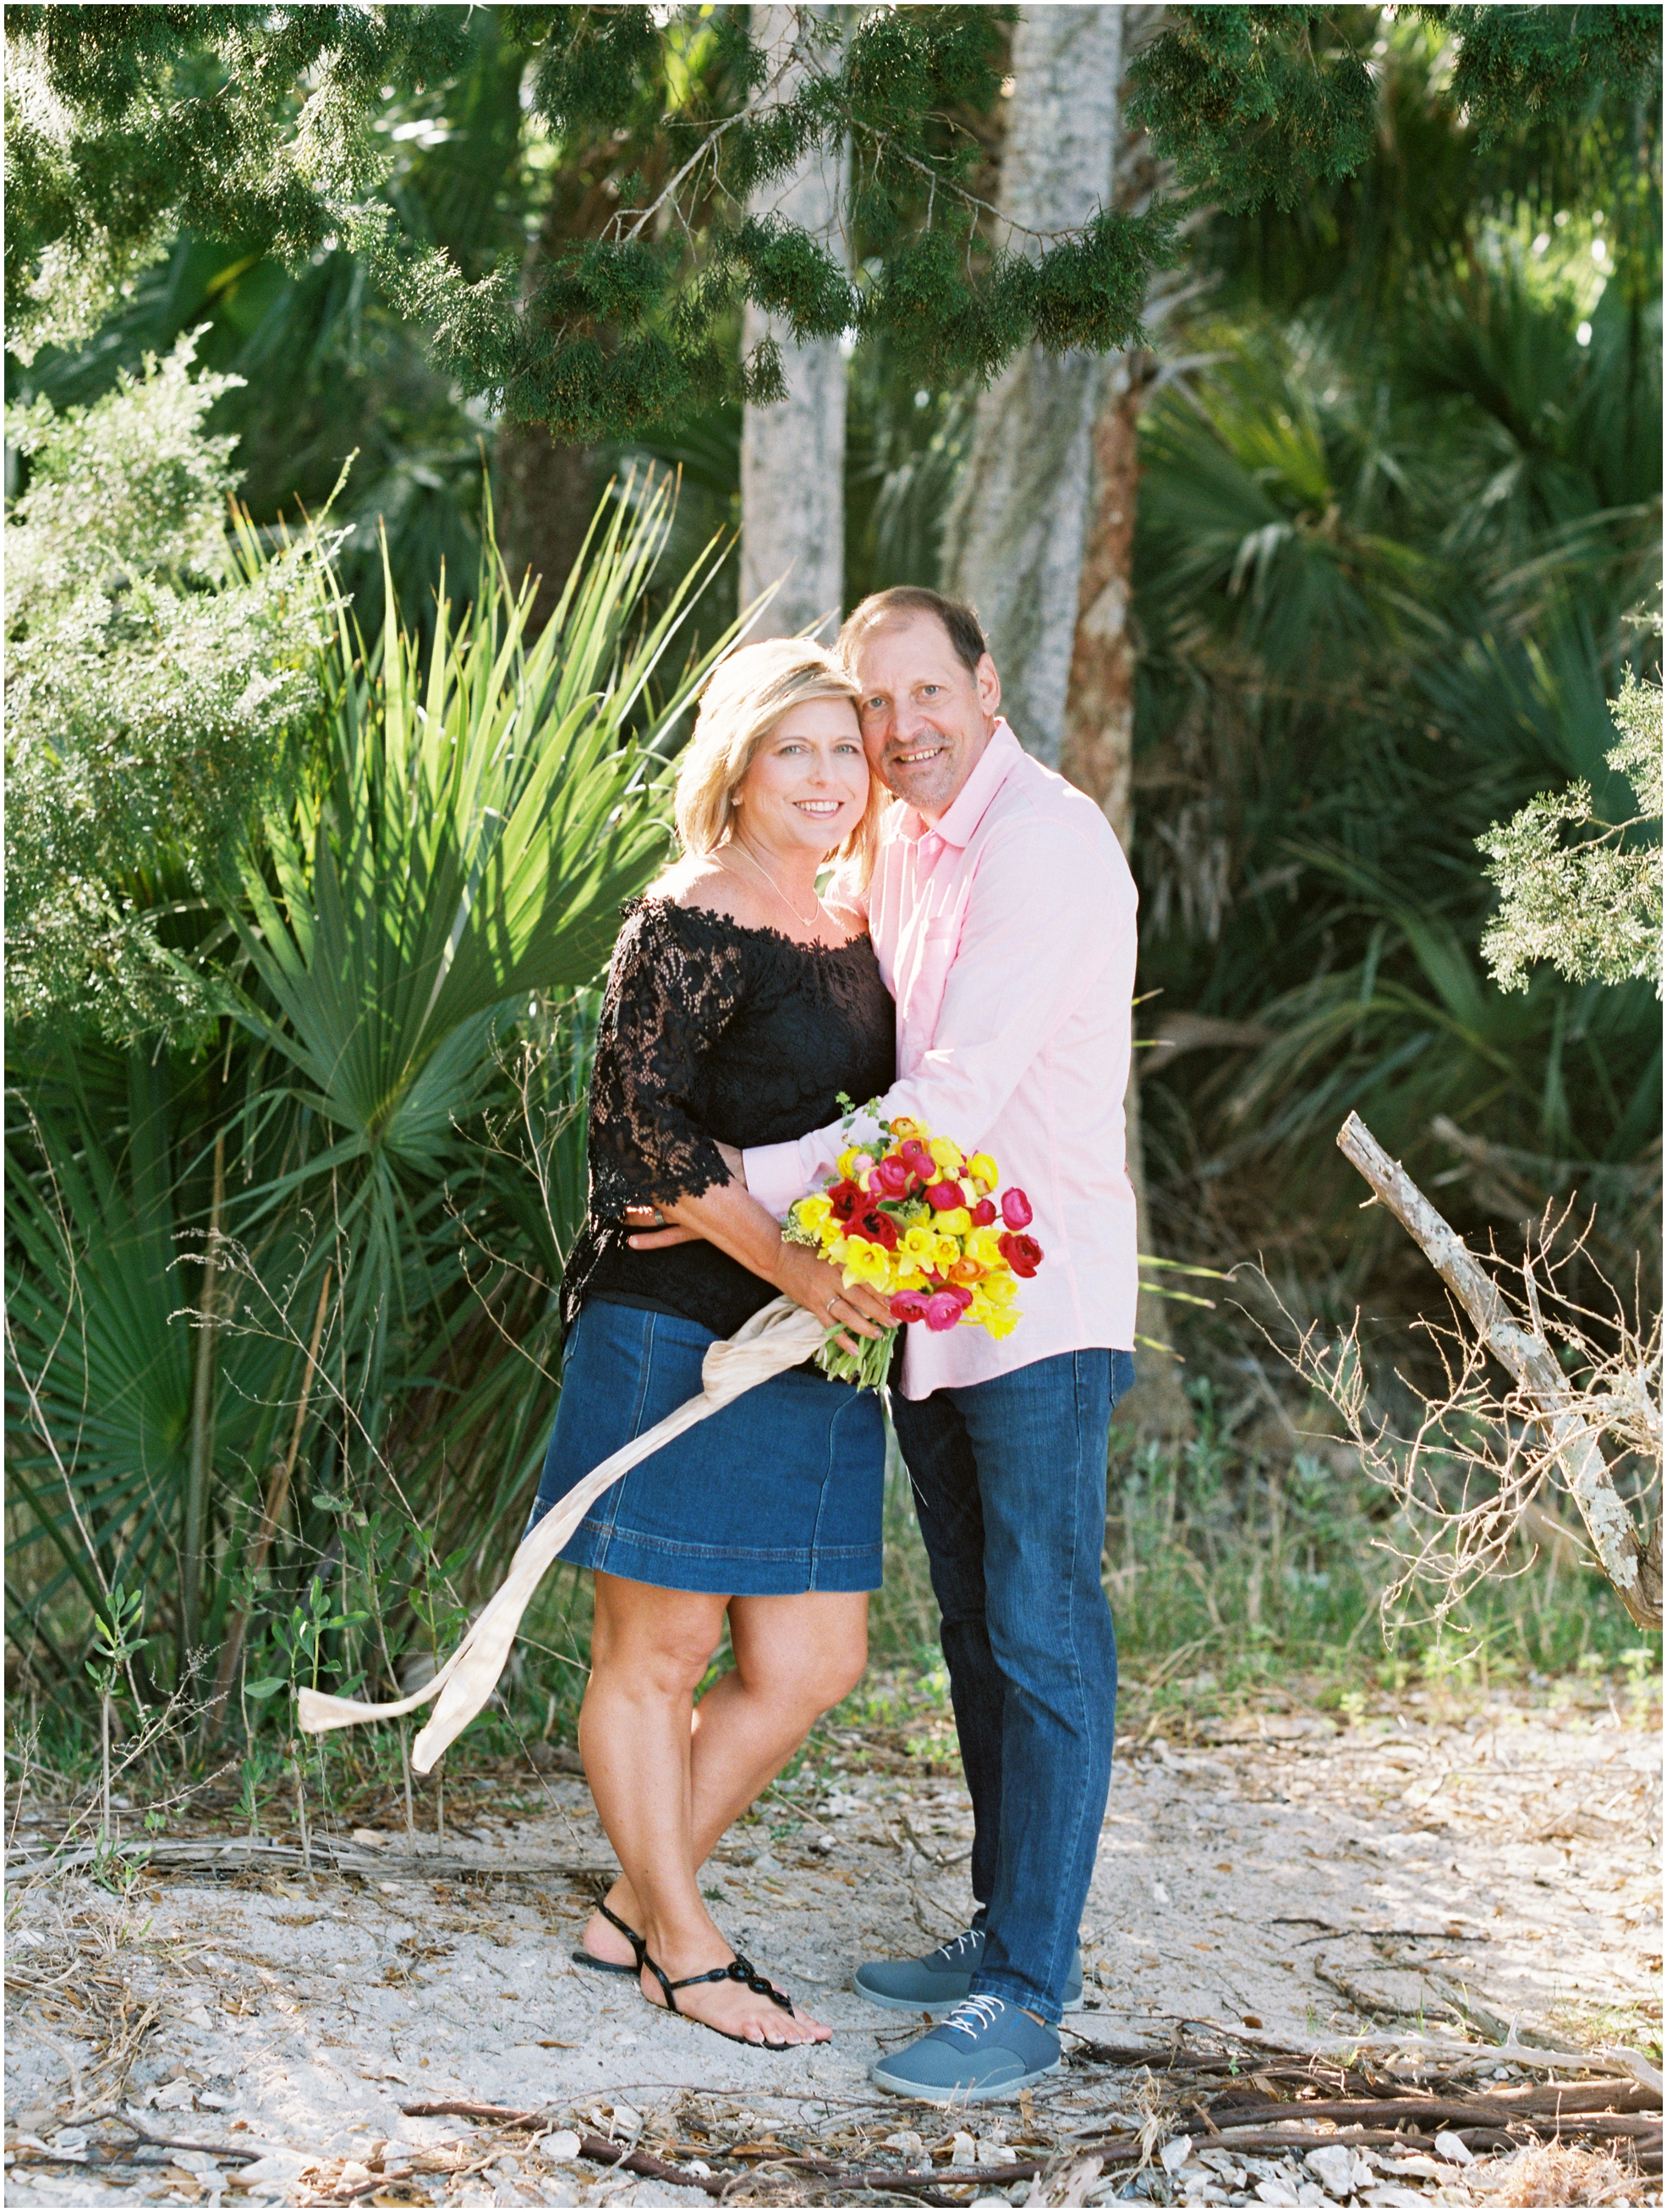 Lisa Silva Photography- Jacksonville, St. Augustine, Amelia Island, Ponte Vedra Beach, North East Florida Fine Art Film Photographer- Anniversary Session at Washington Oaks in Palm Coast, Florida_0056.jpg